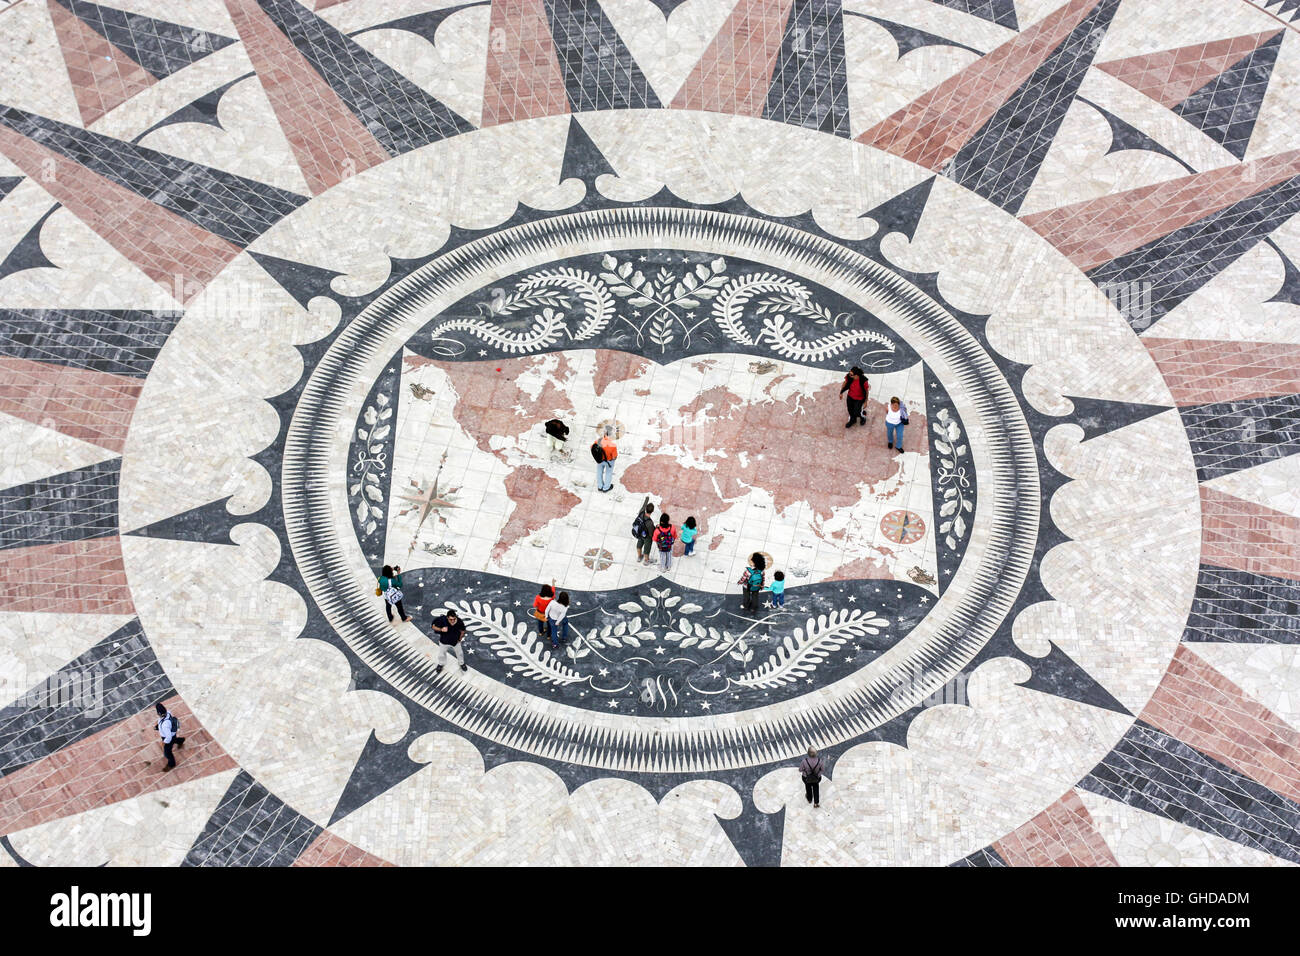 aerial view of giant mosaic of a world map and compass at the discoveries monument, Lisbon, Portugal - Stock Image